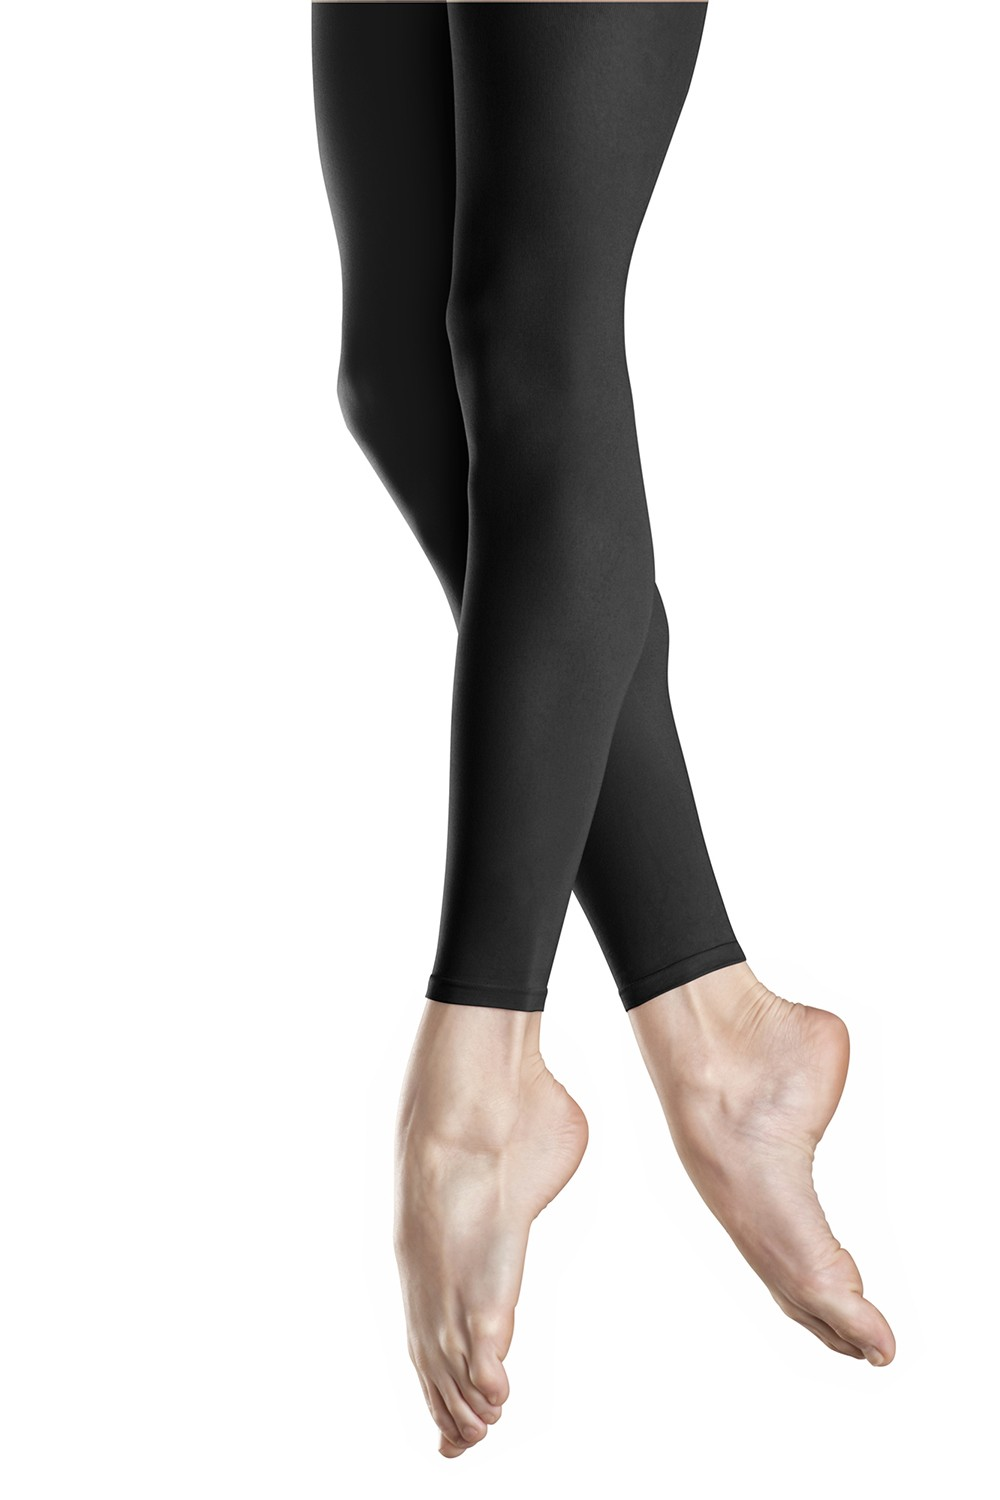 Girls Endura Footless Tight Children's Dance Tights